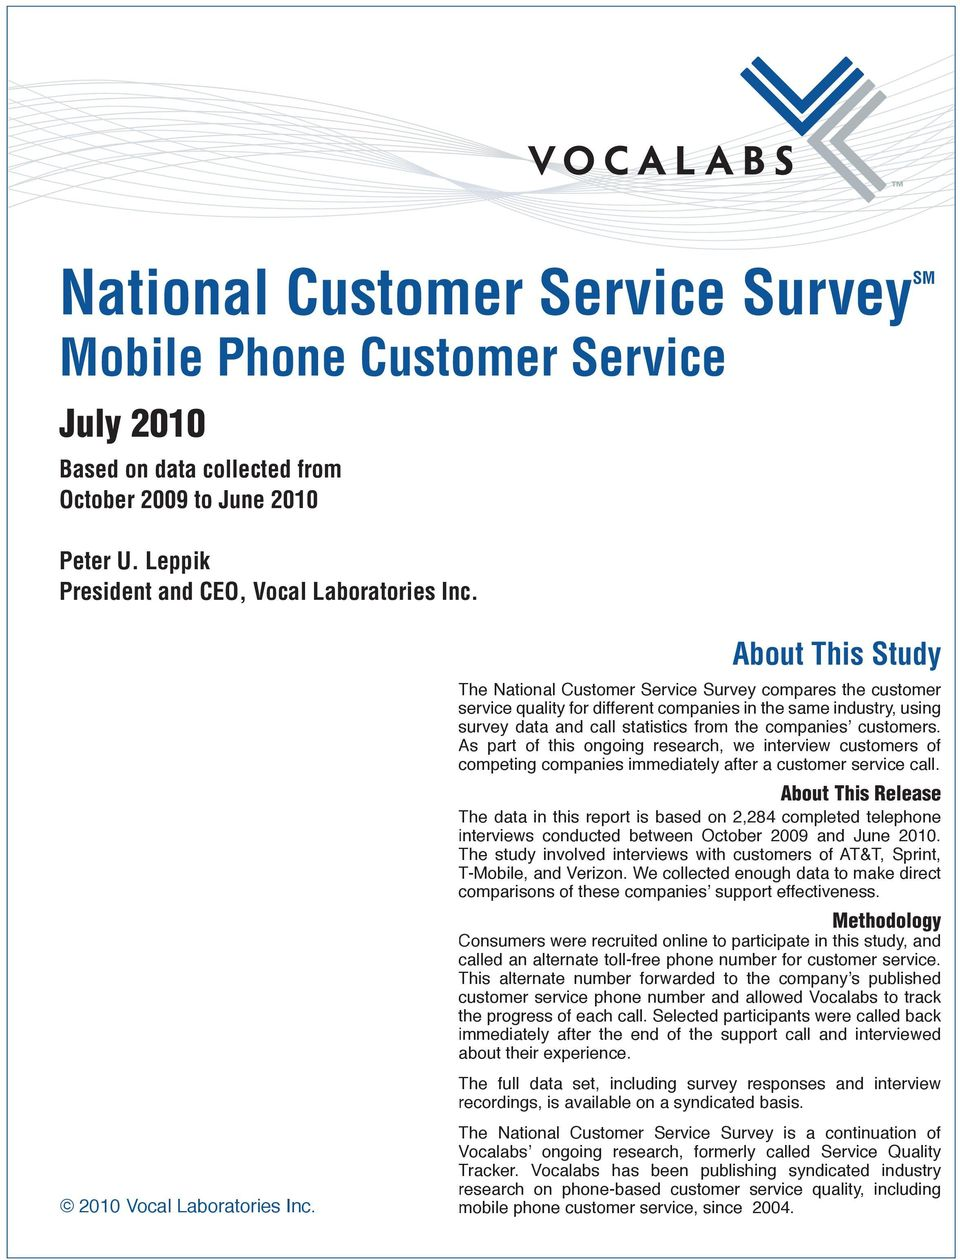 About This Study The National Customer Service Survey compares the customer service quality for different companies in the same industry, using survey data and call statistics from the companies